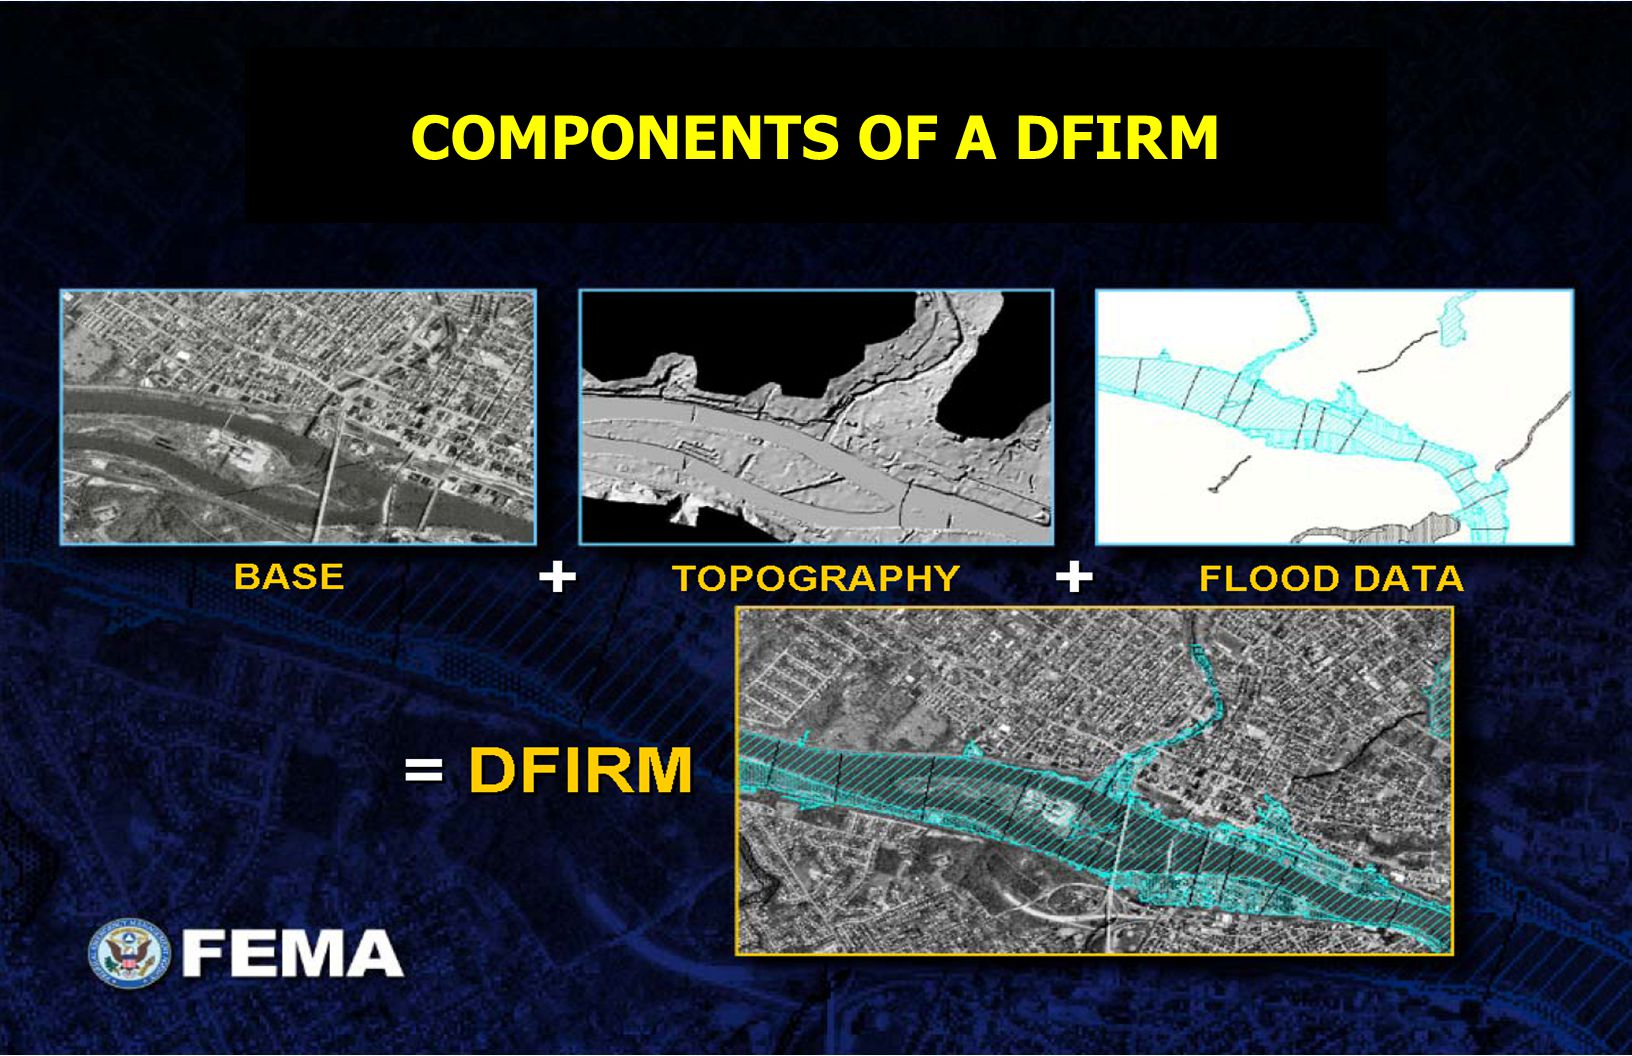 COMPONENTS OF A DFIRM